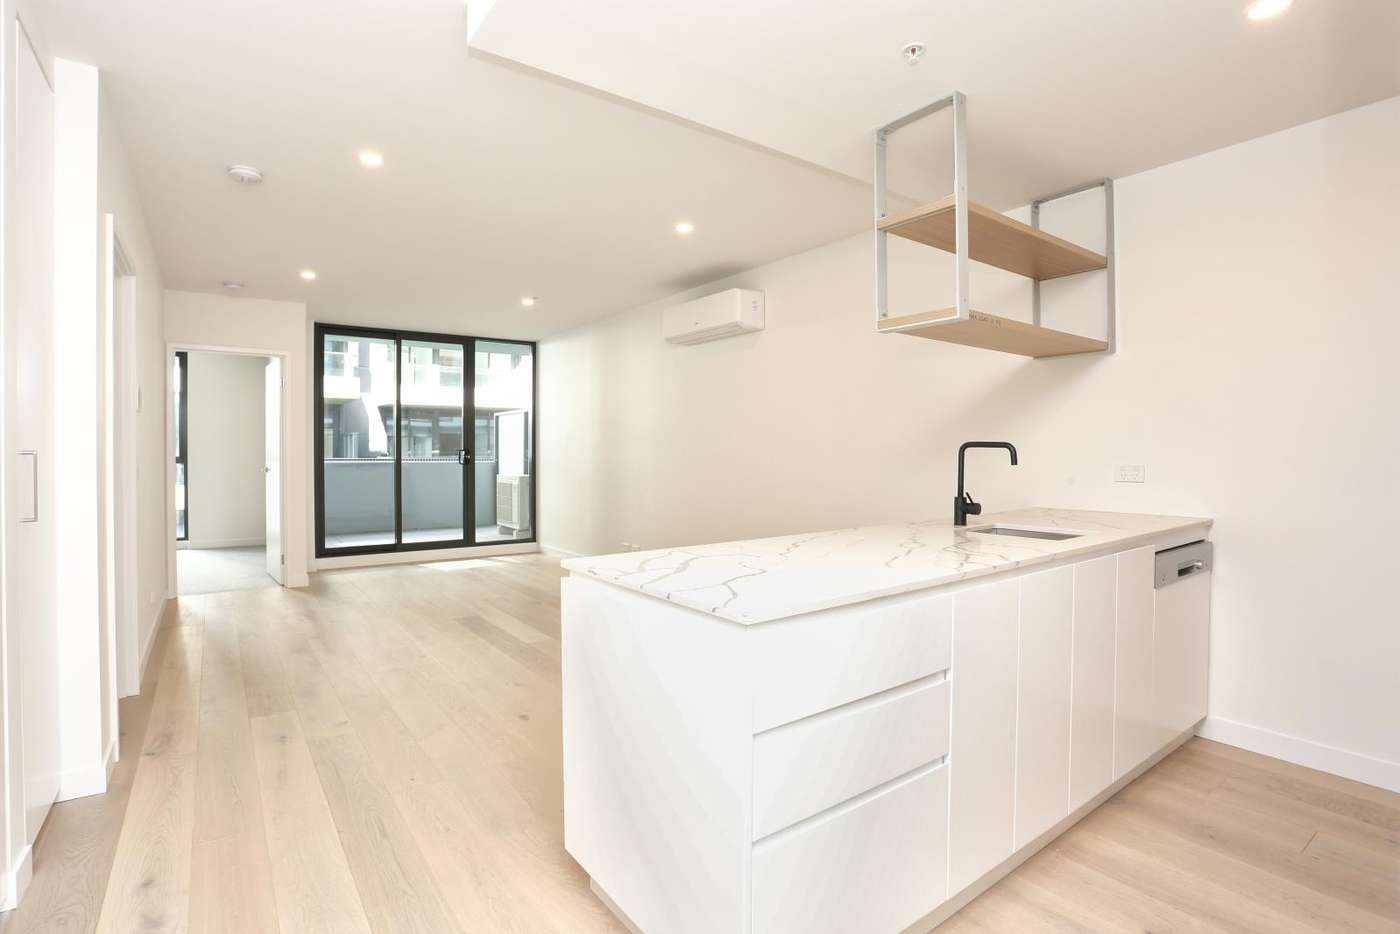 Main view of Homely apartment listing, 407/1 Olive York Way, Brunswick West VIC 3055